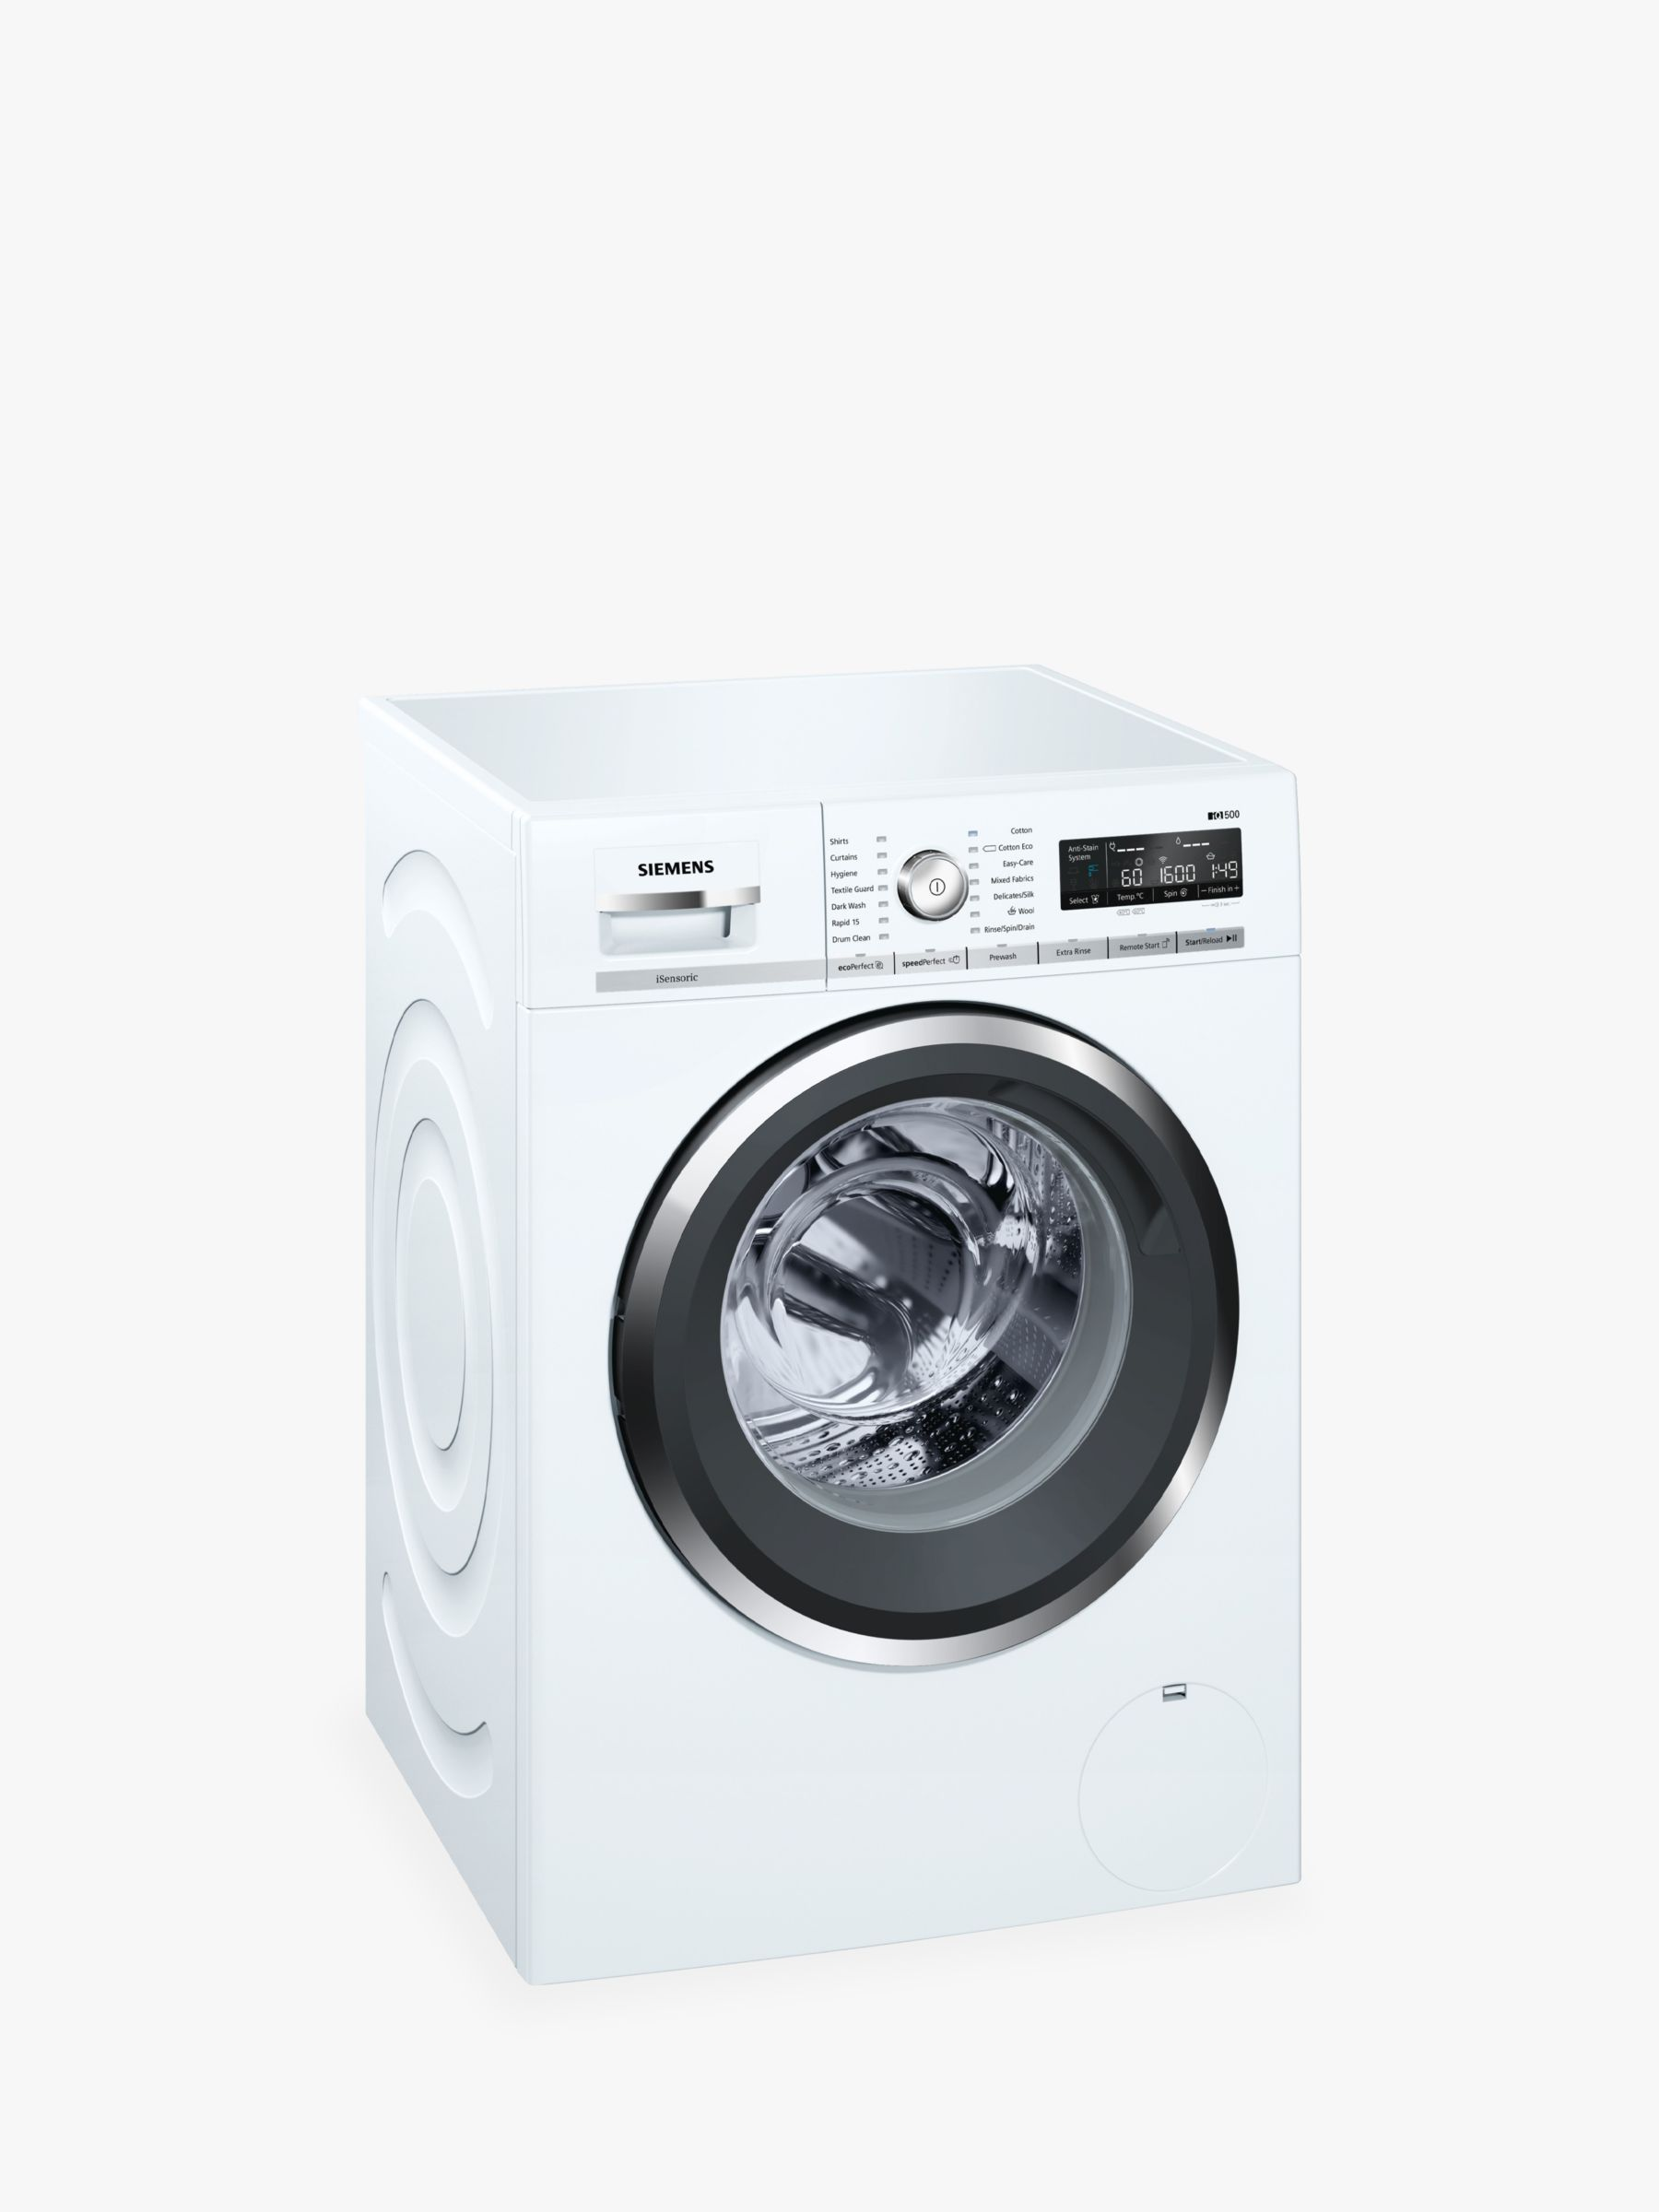 Siemens Siemens WM16W5H0GB Freestanding Washing Machine with Home Connect, 9kg Load, A+++ Energy Rating, 1600rpm Spin, White